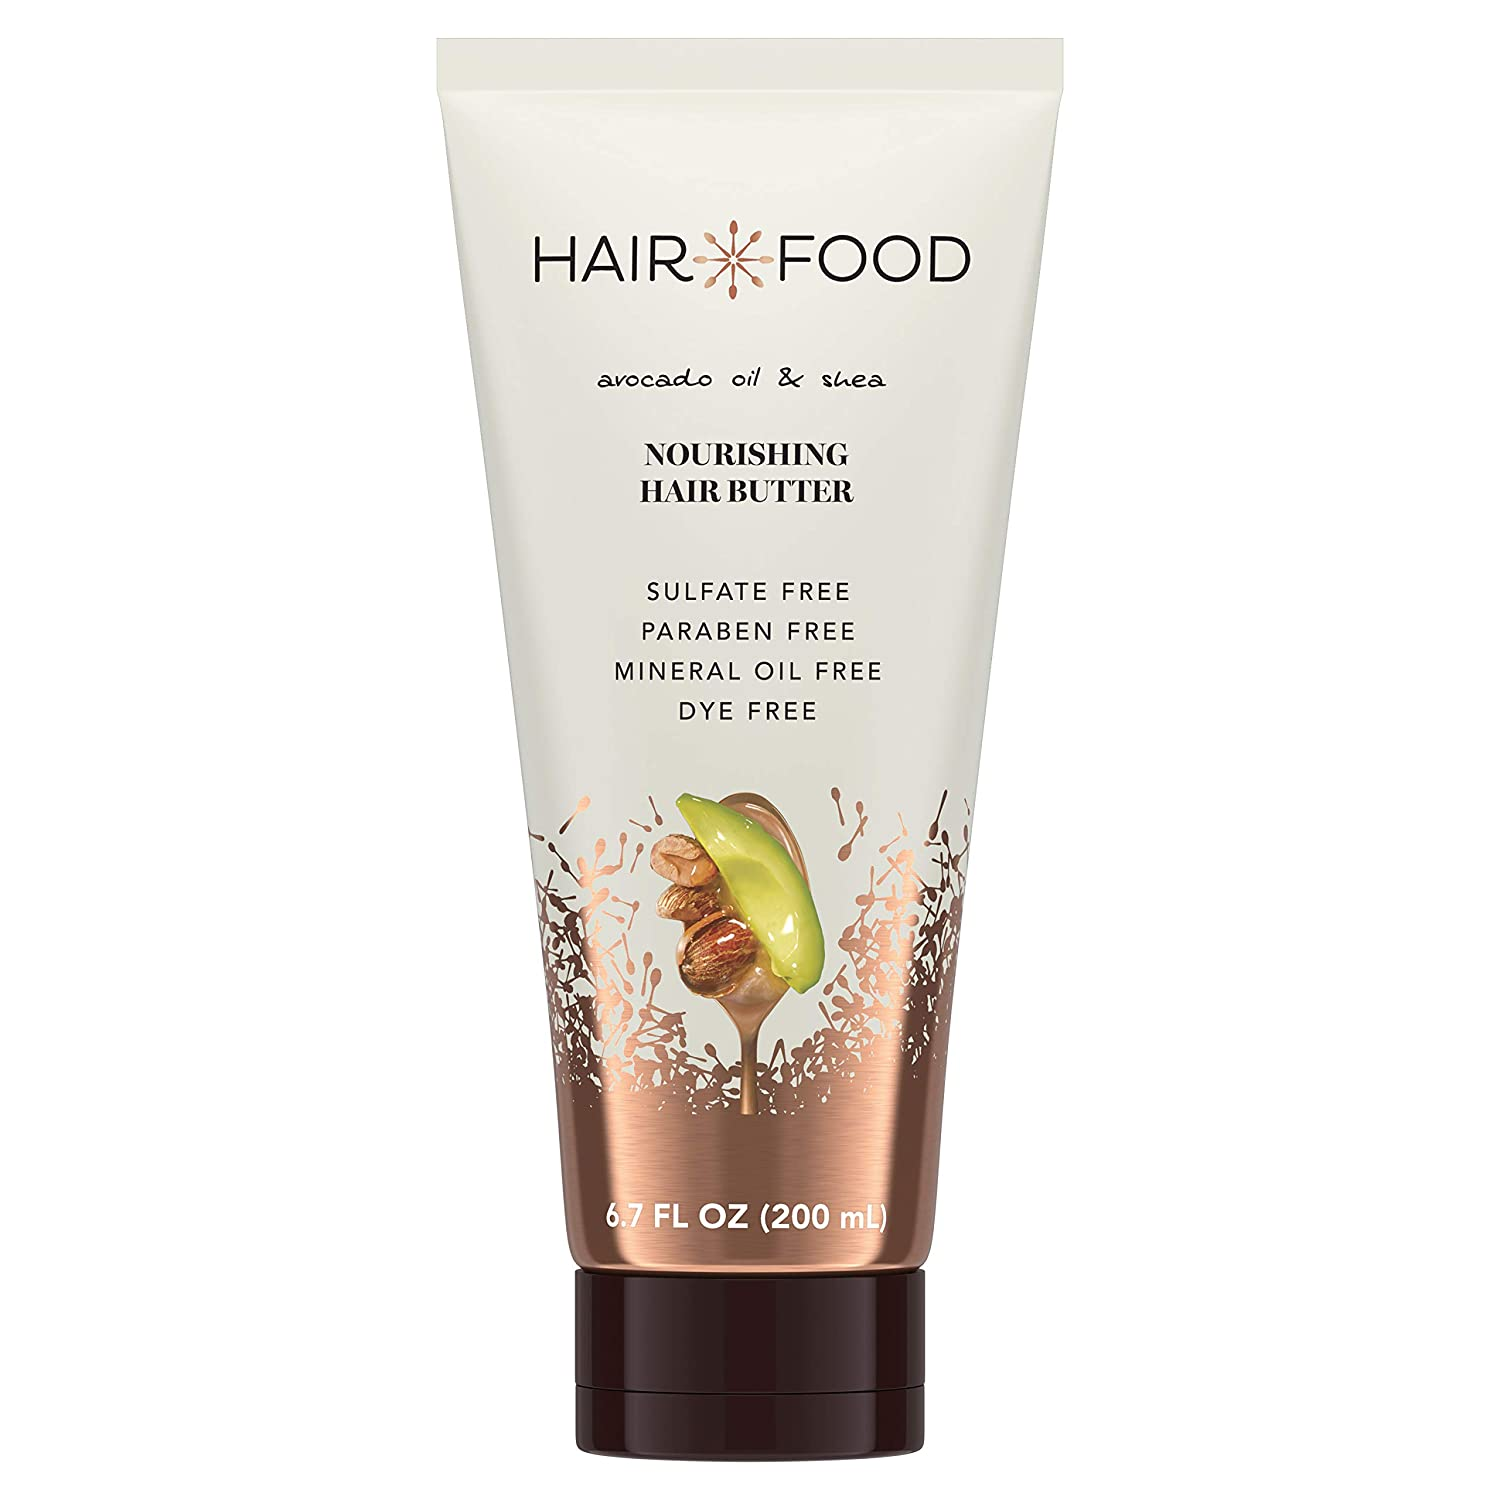 Hair Food Avocado Oil & Shea Butter Nourishing Hair Butter, Dye Free, 6.7 Fl Oz